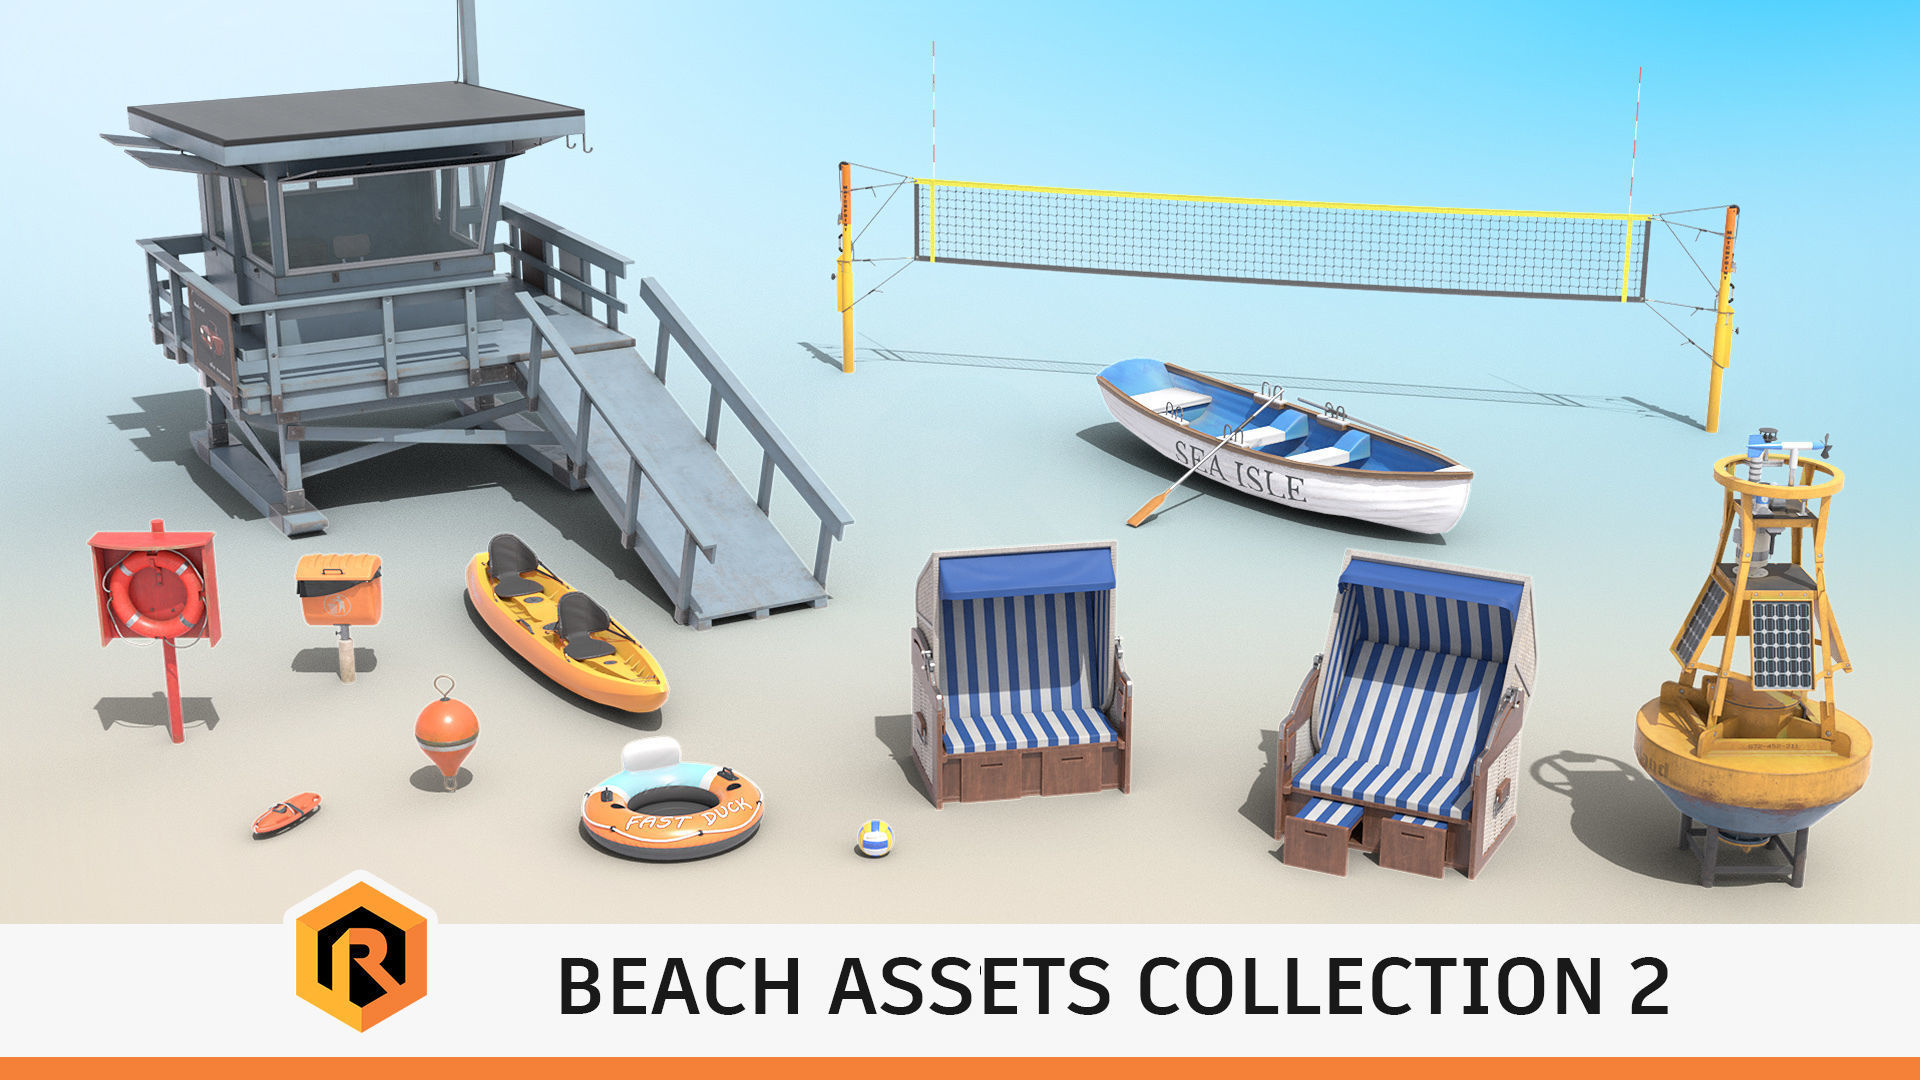 Beach Assets Collection 2